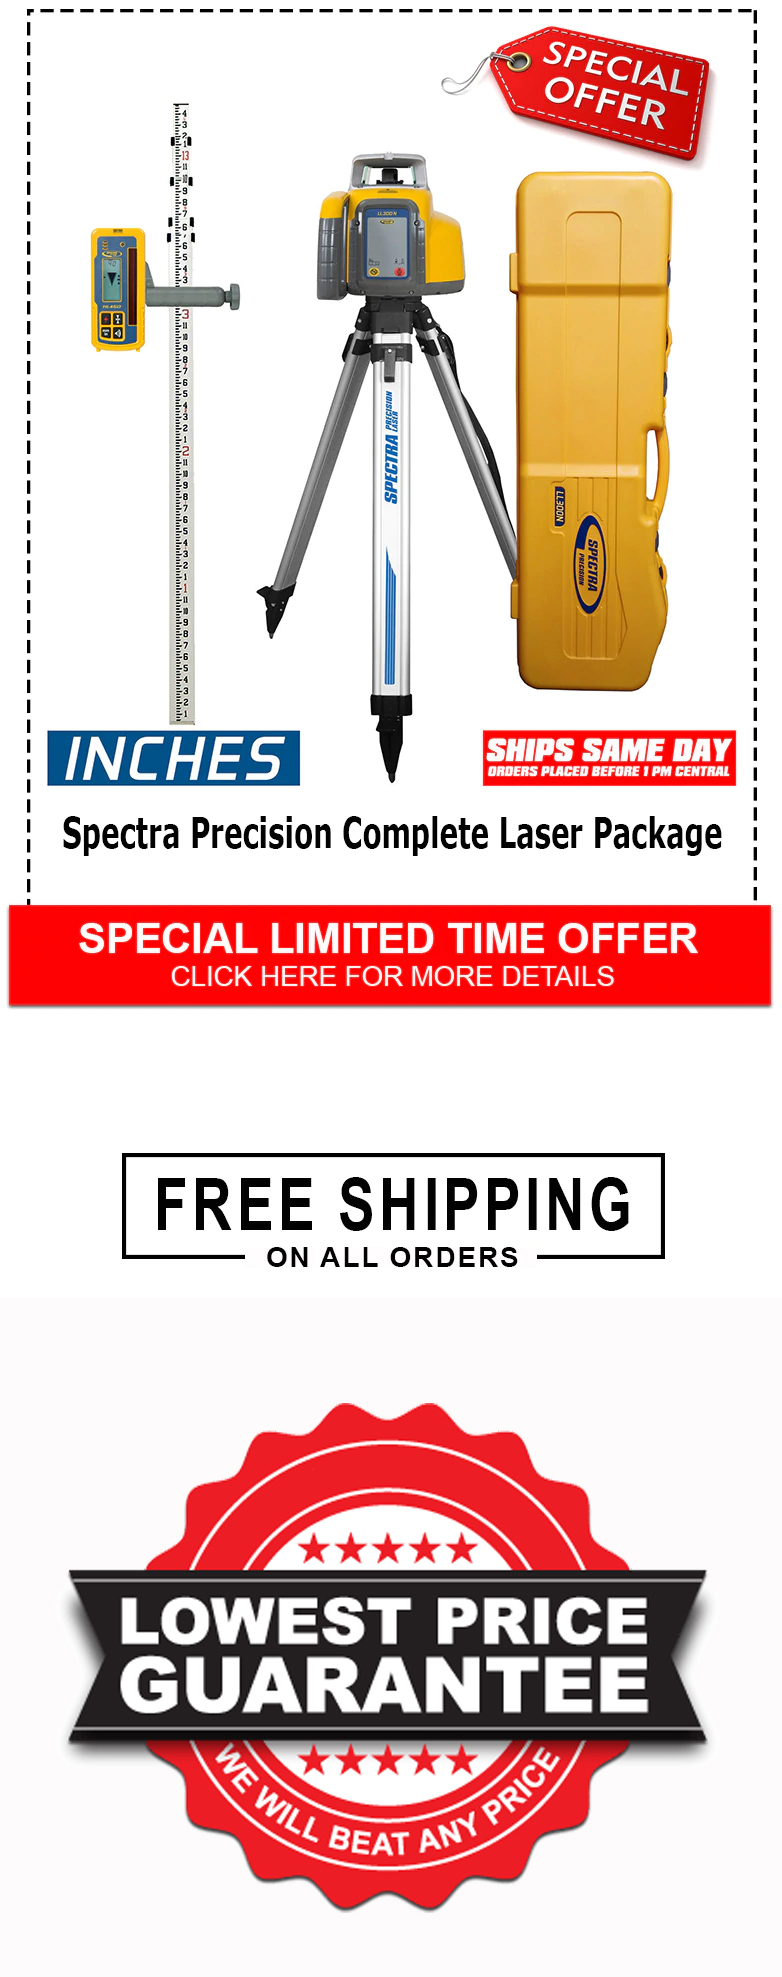 homepage-spectra-precision-special-offer-banner.jpg